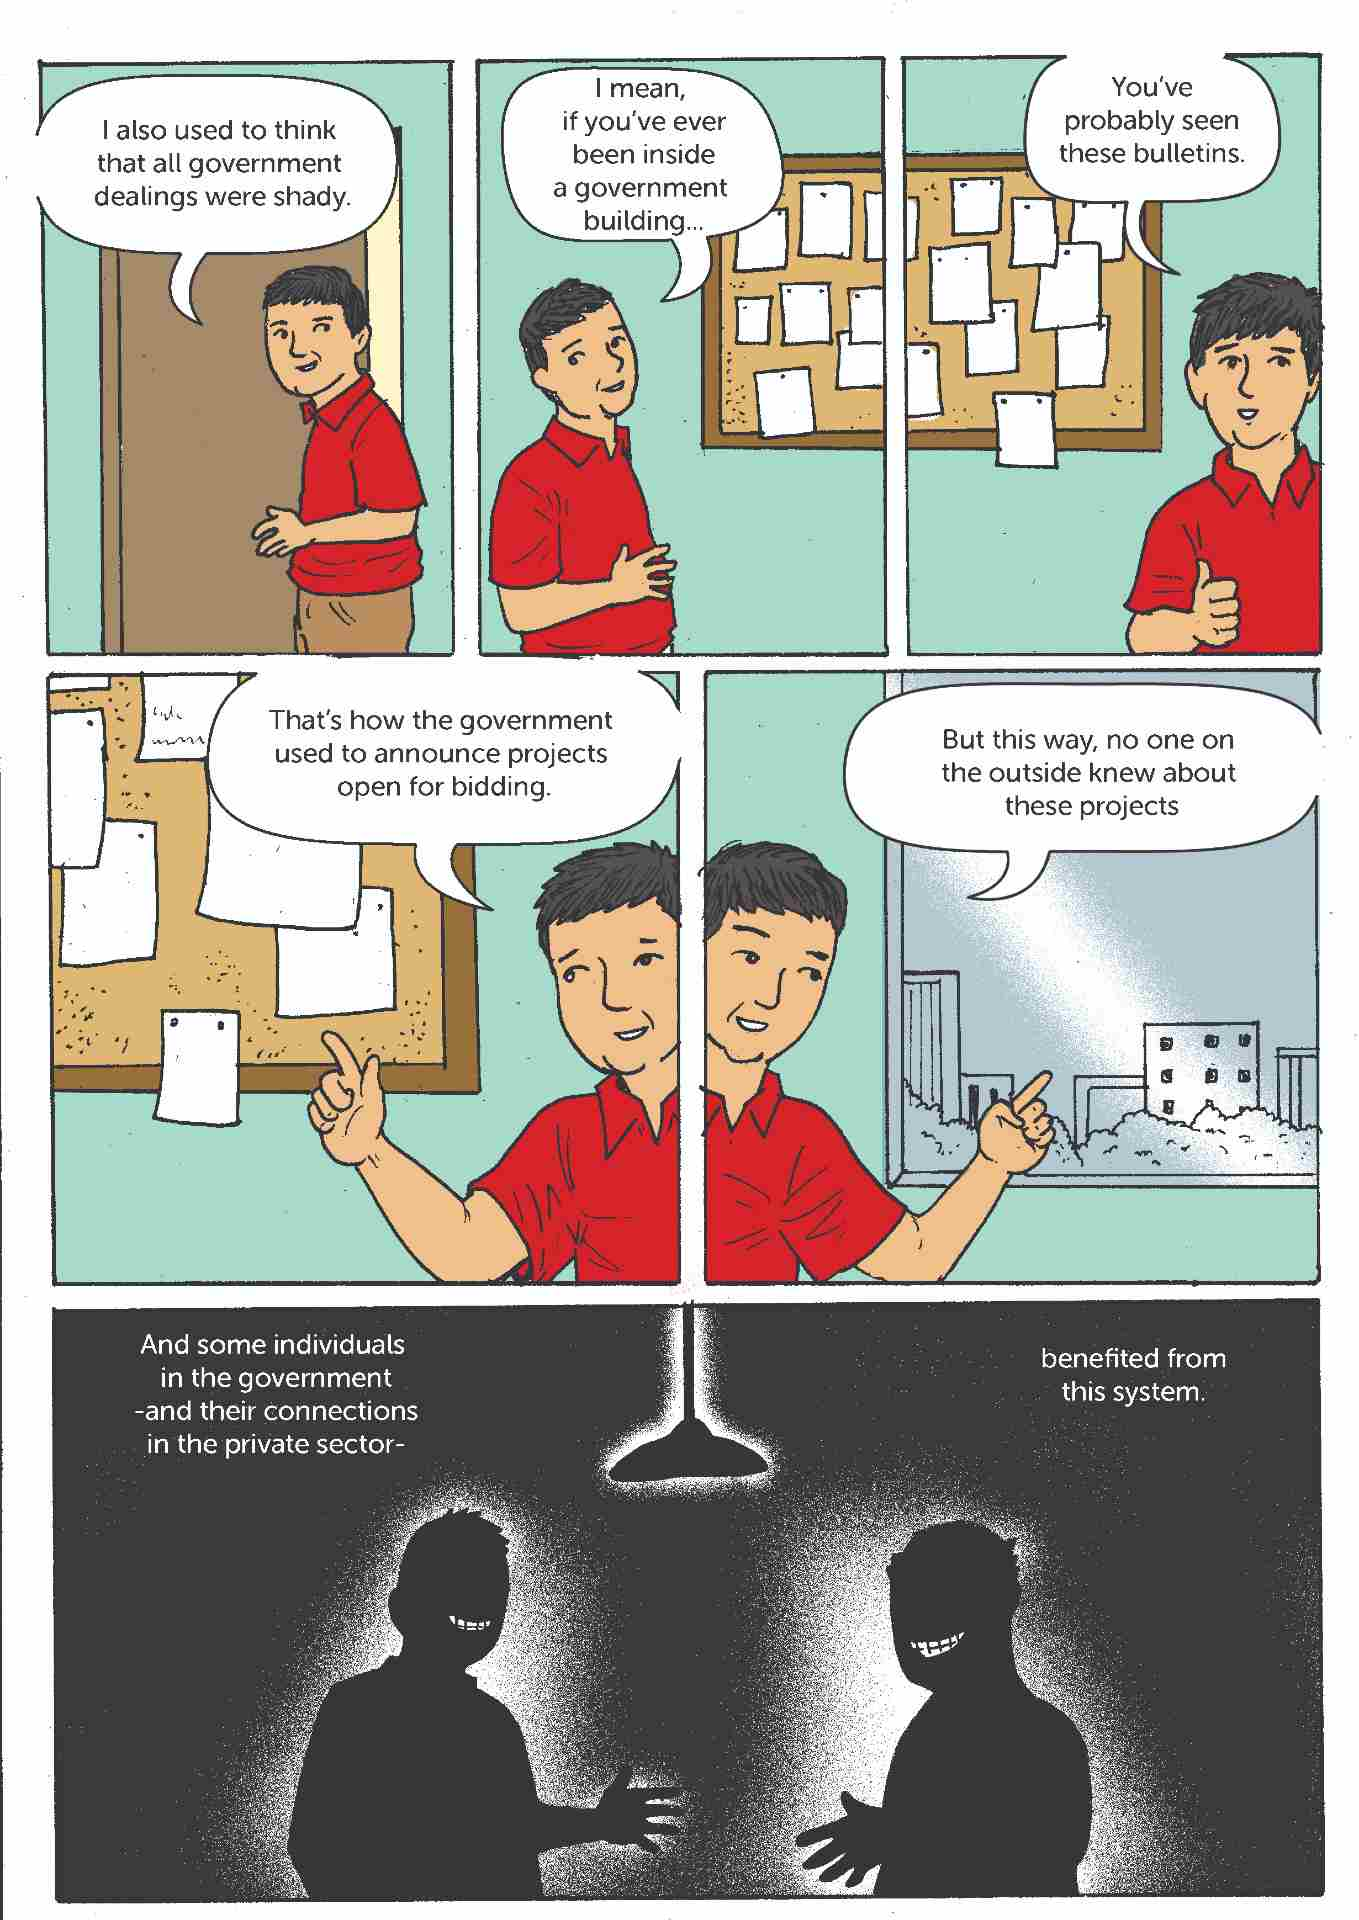 Comic strip about open contracting in the Philippines 3